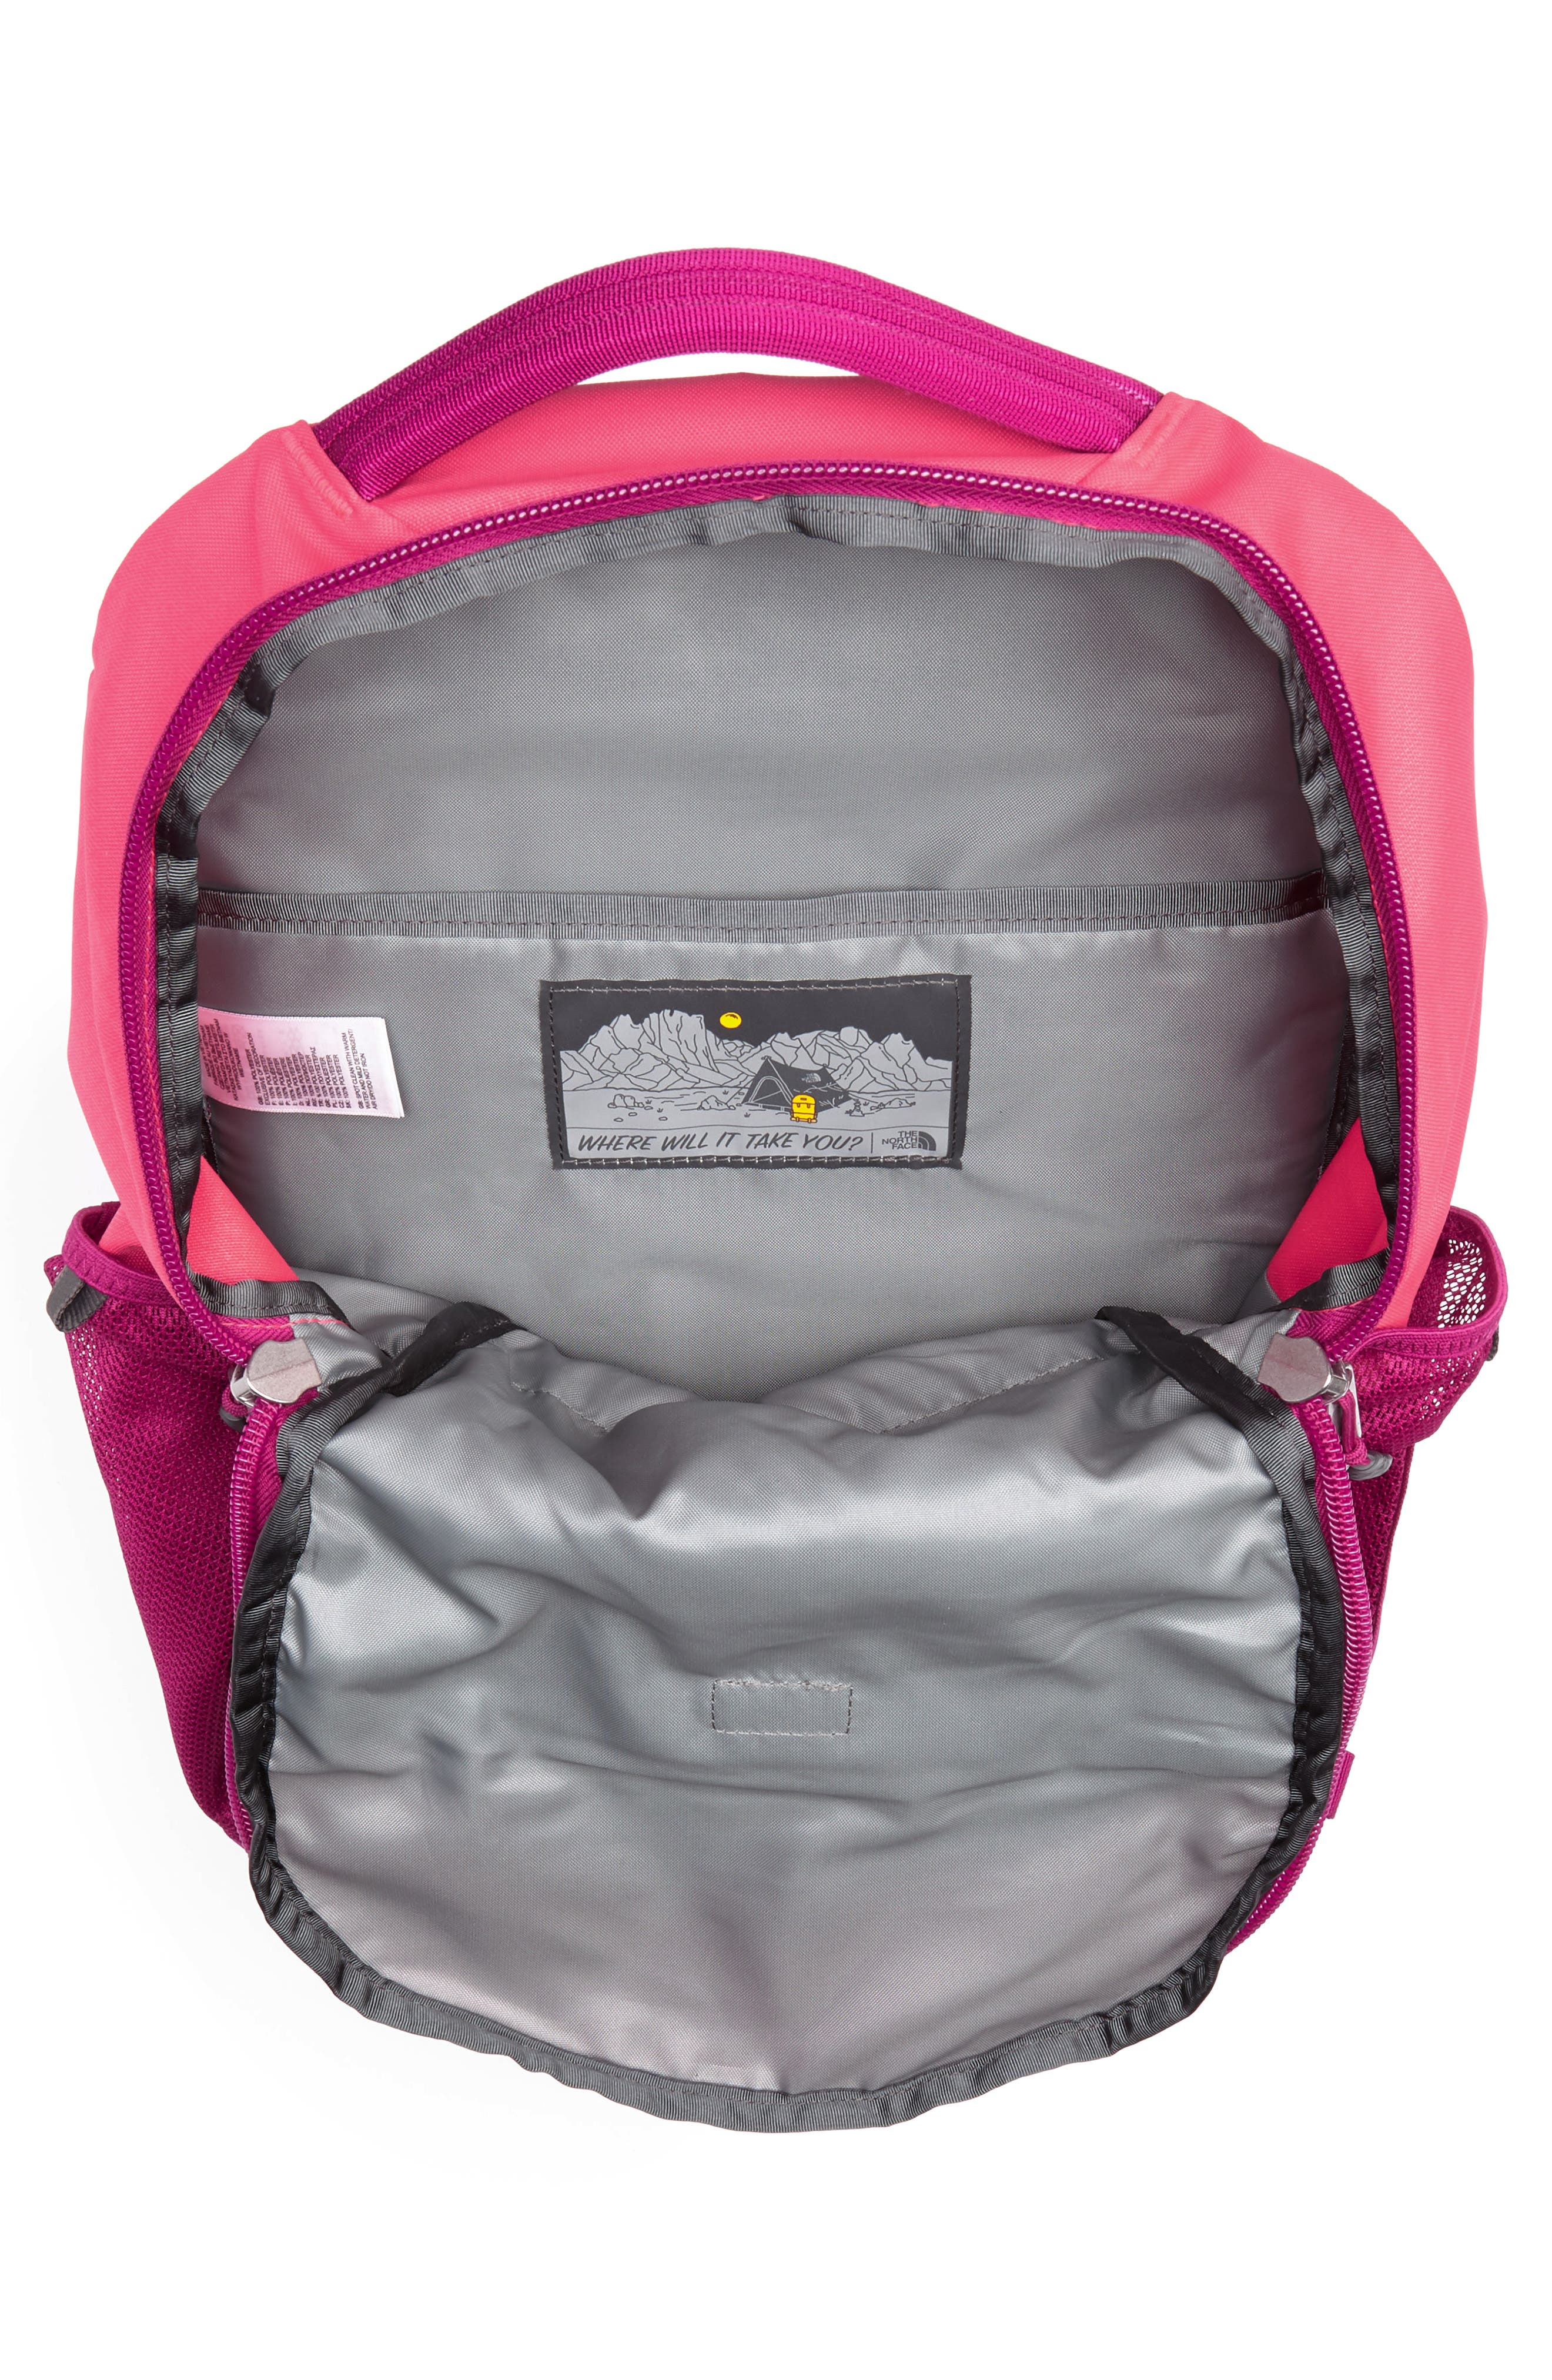 Vault Backpack,                             Alternate thumbnail 3, color,                             ATOMIC PINK/ DRAMATIC PLUM